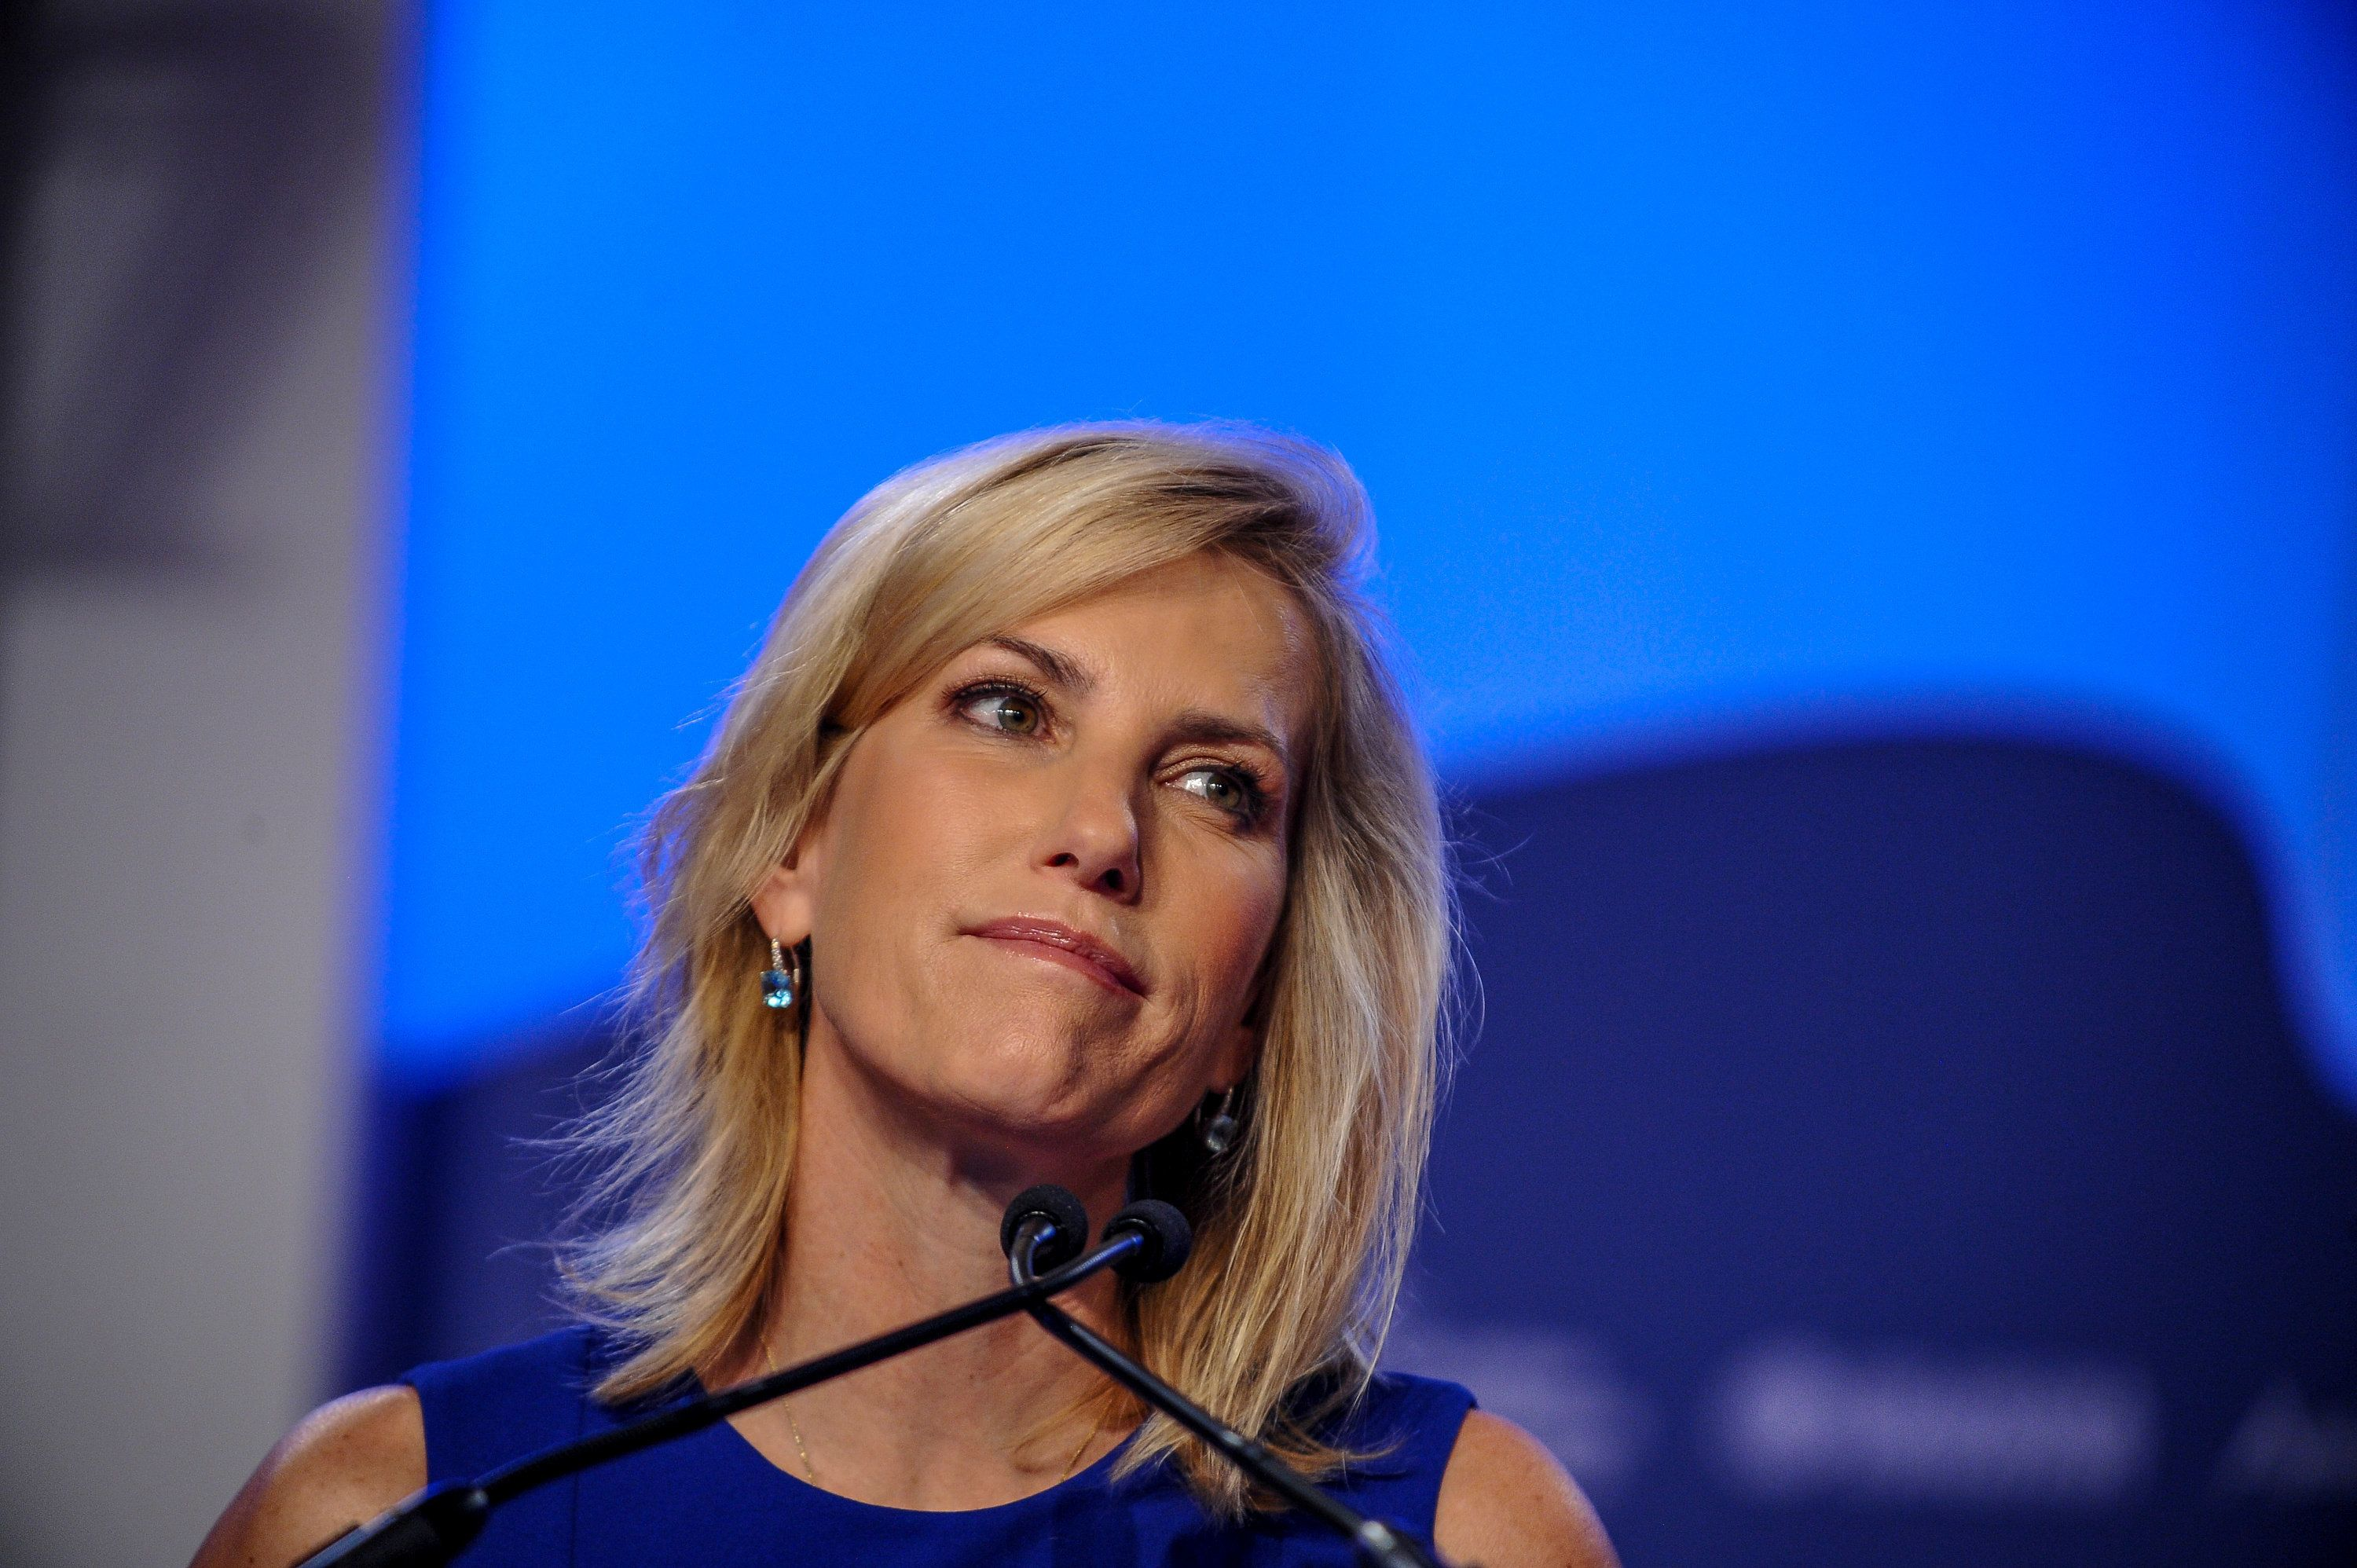 Radio host Laura Ingraham delivers remarks during the Value Voters Summit at the Omni Shoreham Hotel in Washington, U.S., October 14, 2017. REUTERS/Mary F. Calvert